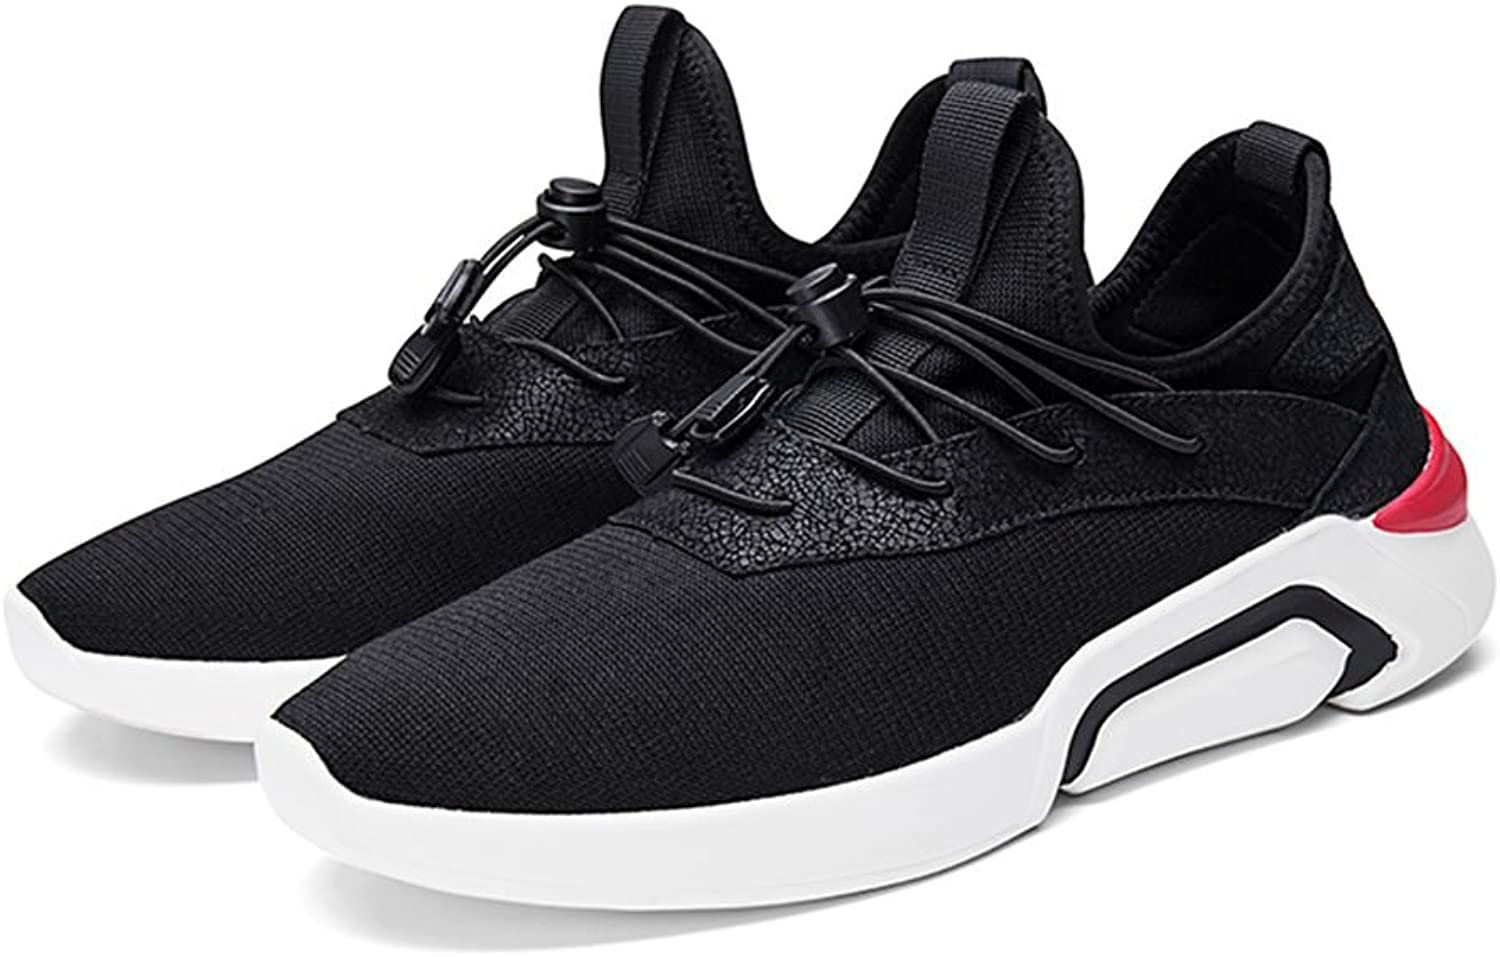 IDEALGLORY Unisex Running shoes Athletic Sport Sneakers Gym shoes Light Weight Comfortable snkeakers